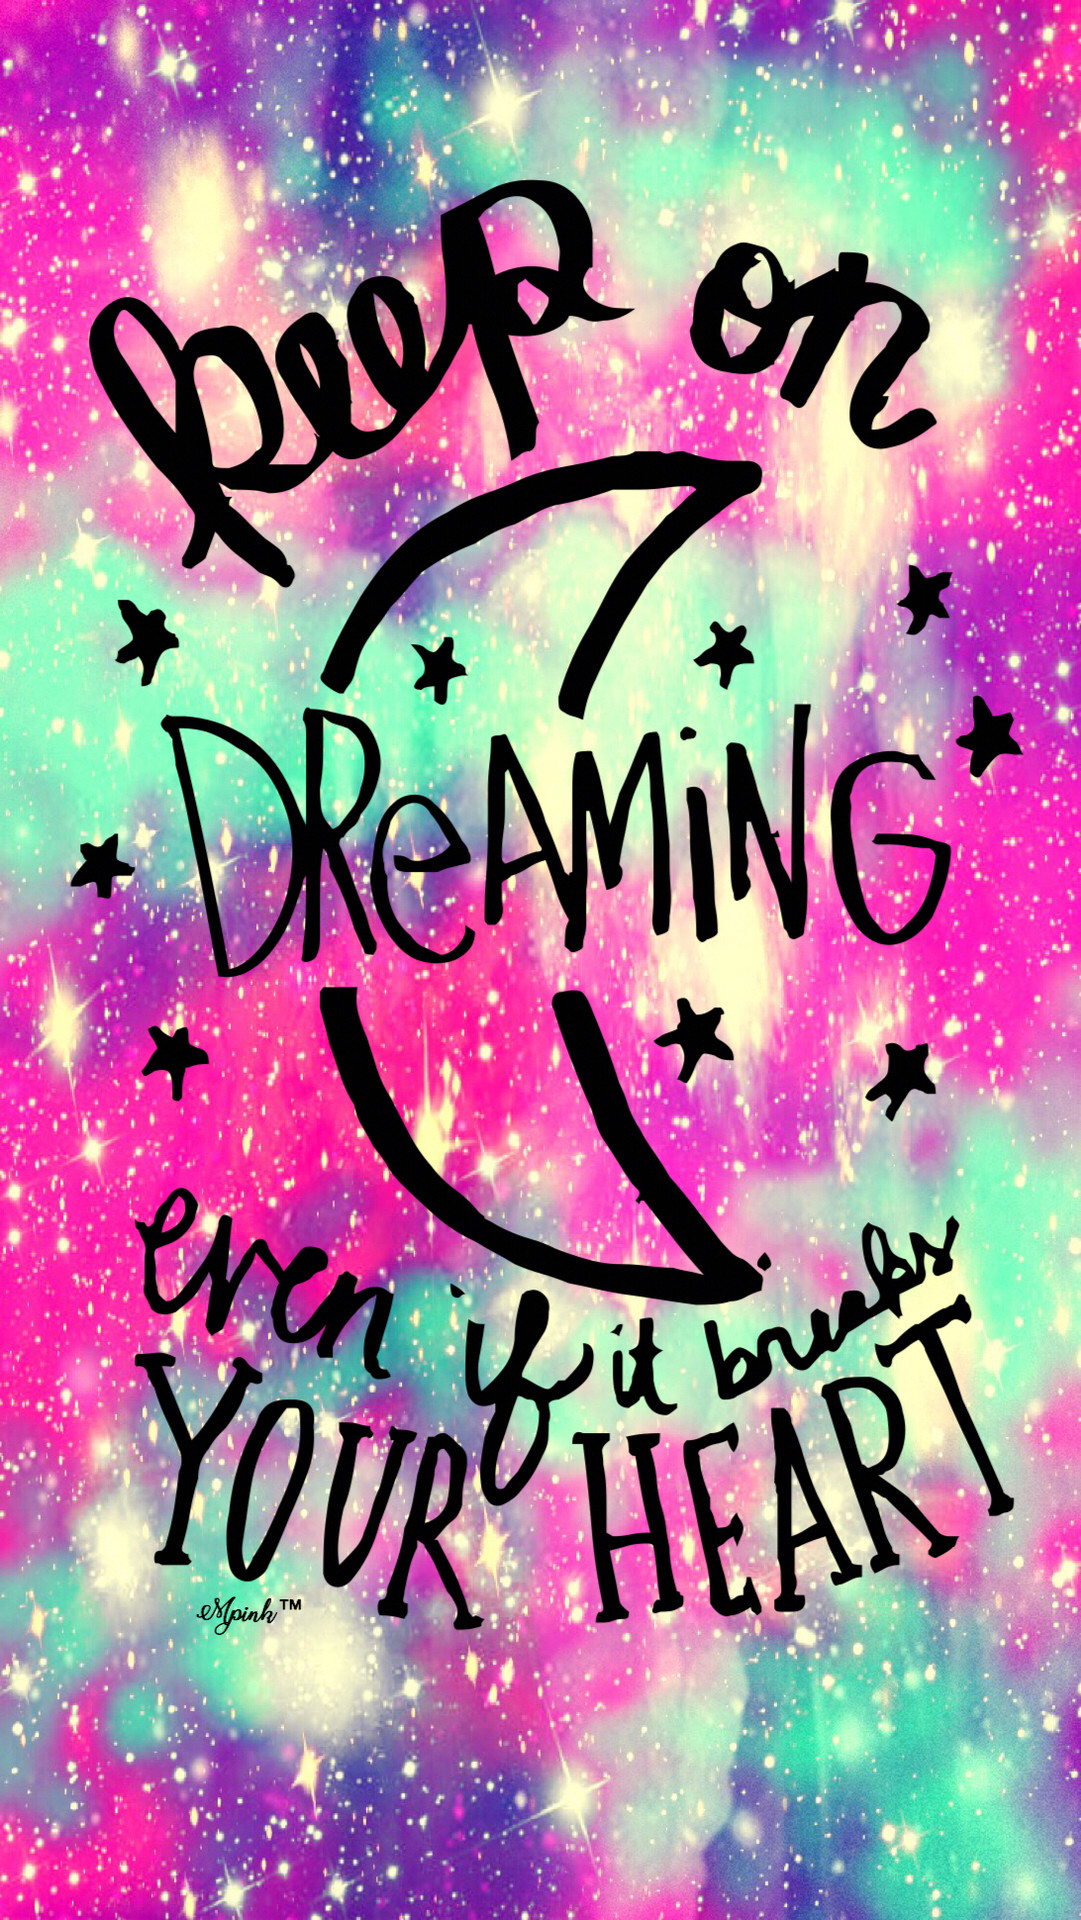 Keep On Dreaming Quote Galaxy iPhone/Android Wallpaper I Created For The  App Top Chart